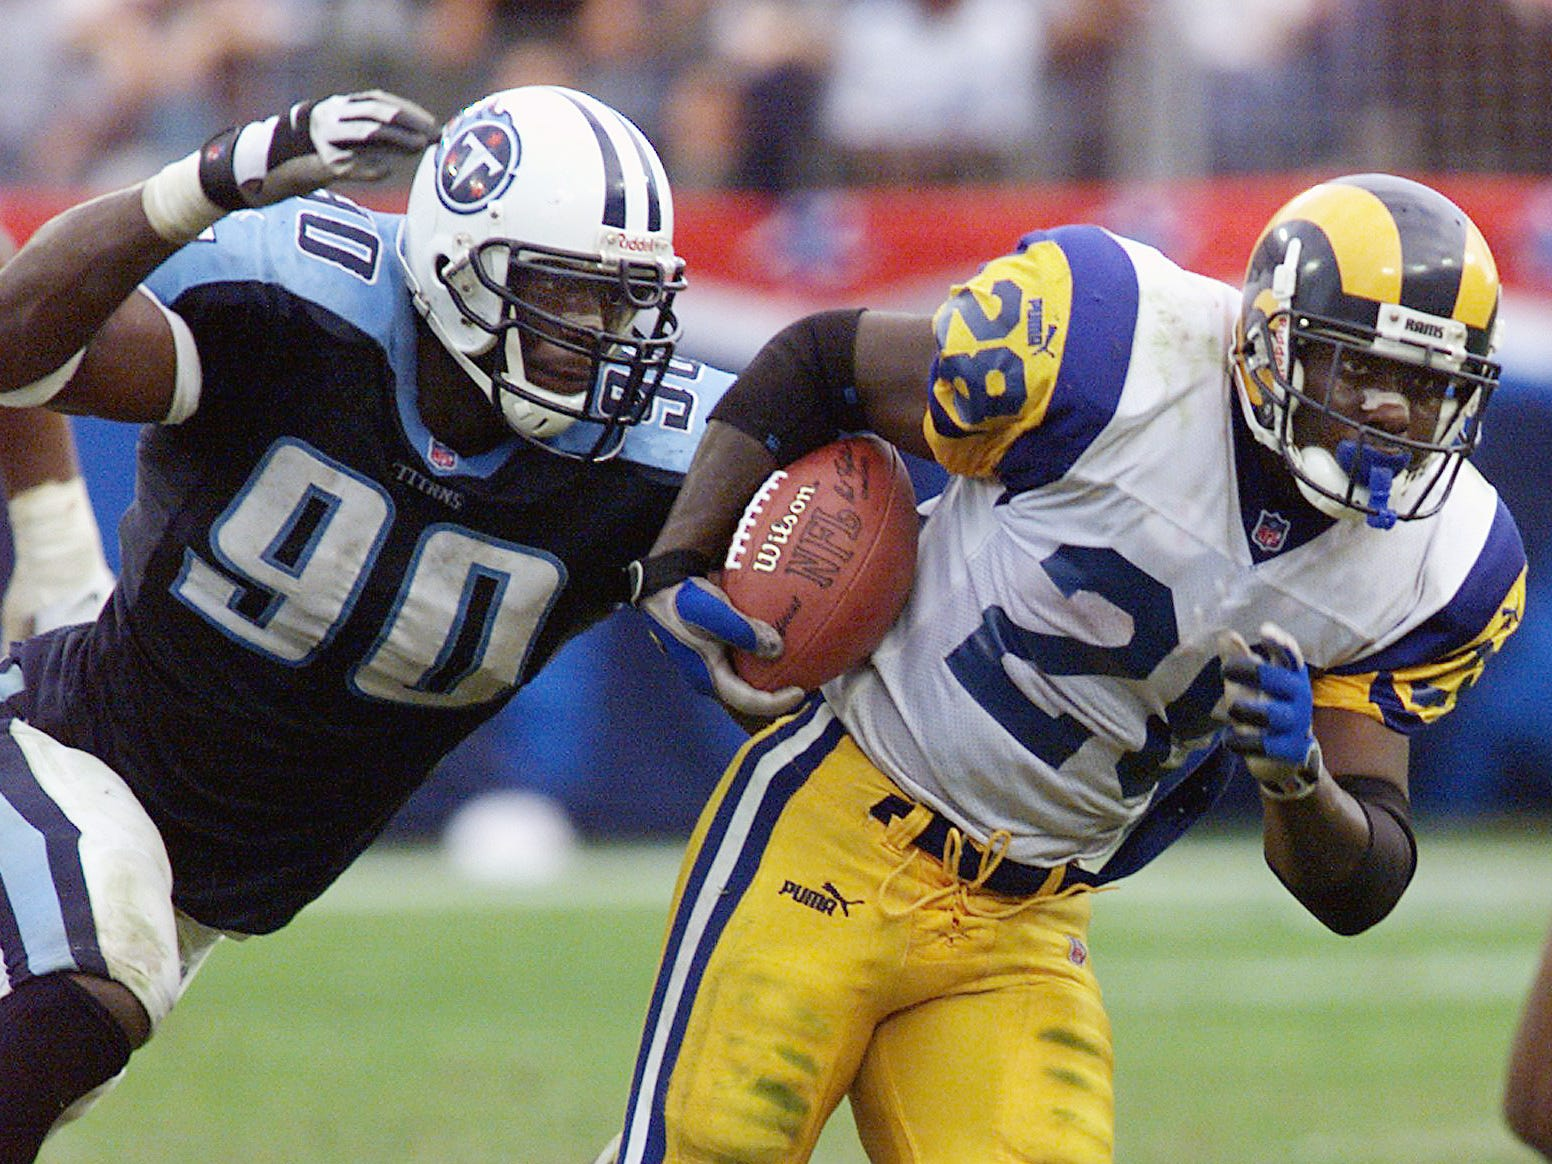 Tennessee Titans star rookie Jevon Kearse chases down Marshall Faulk of the St. Louis Rams during the Titans 24-21 victory at the Adelpha Coliseum in Nashville Oct. 31, 1999.